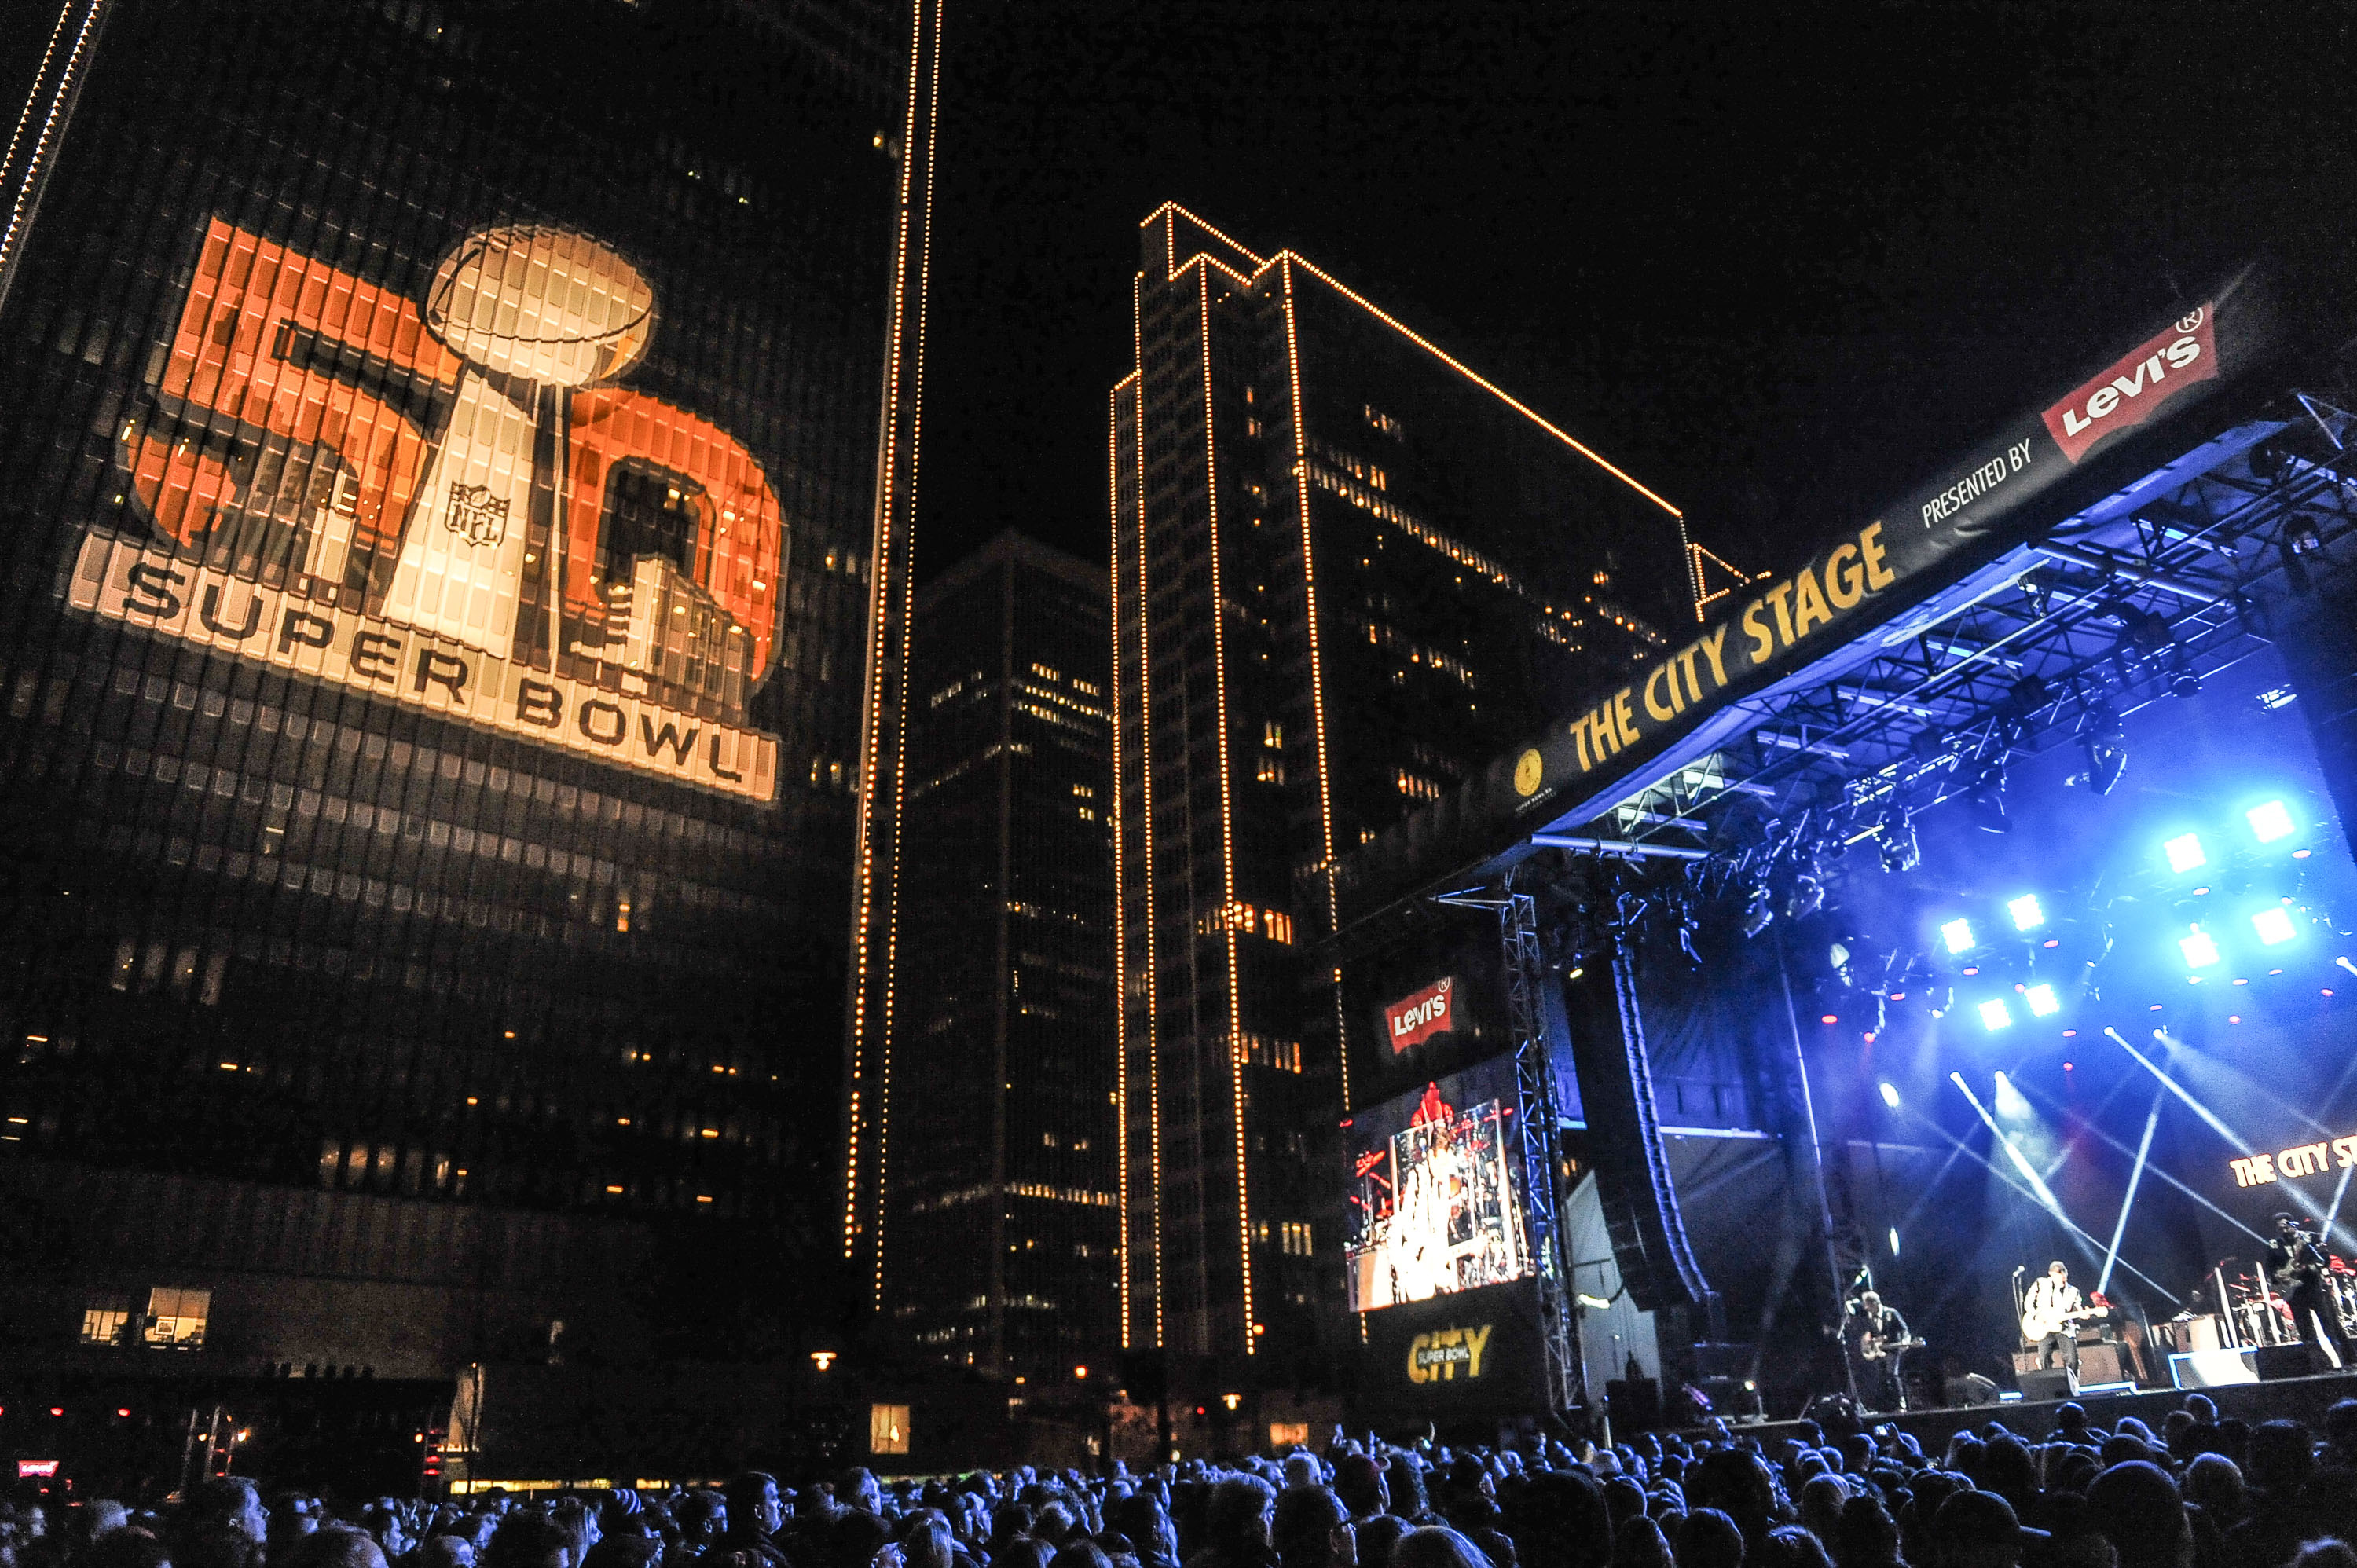 Super Bowl City Opening Night Celebration - Chris Isaak in Concert